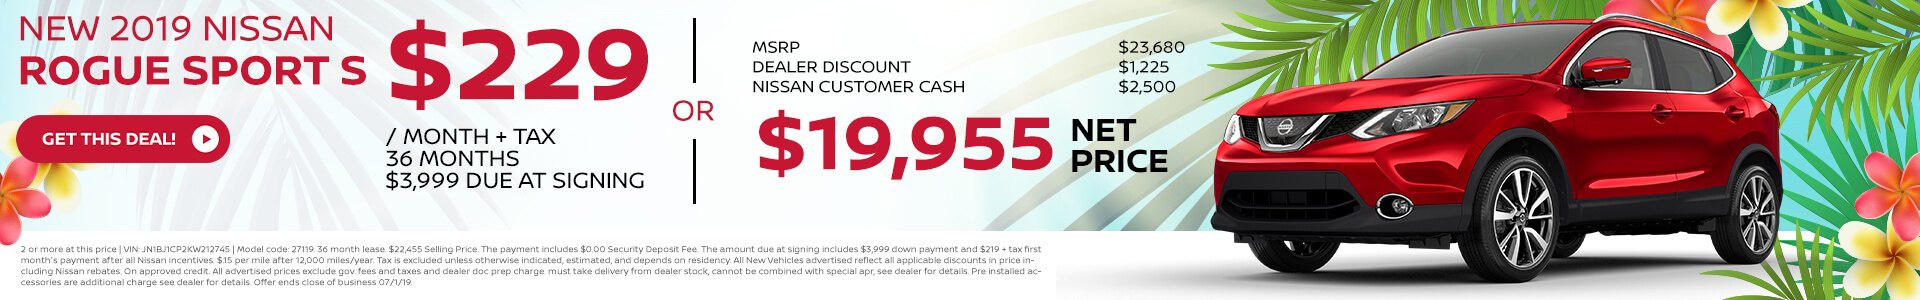 2019 Nissan Rogue Sport - Lease for $219